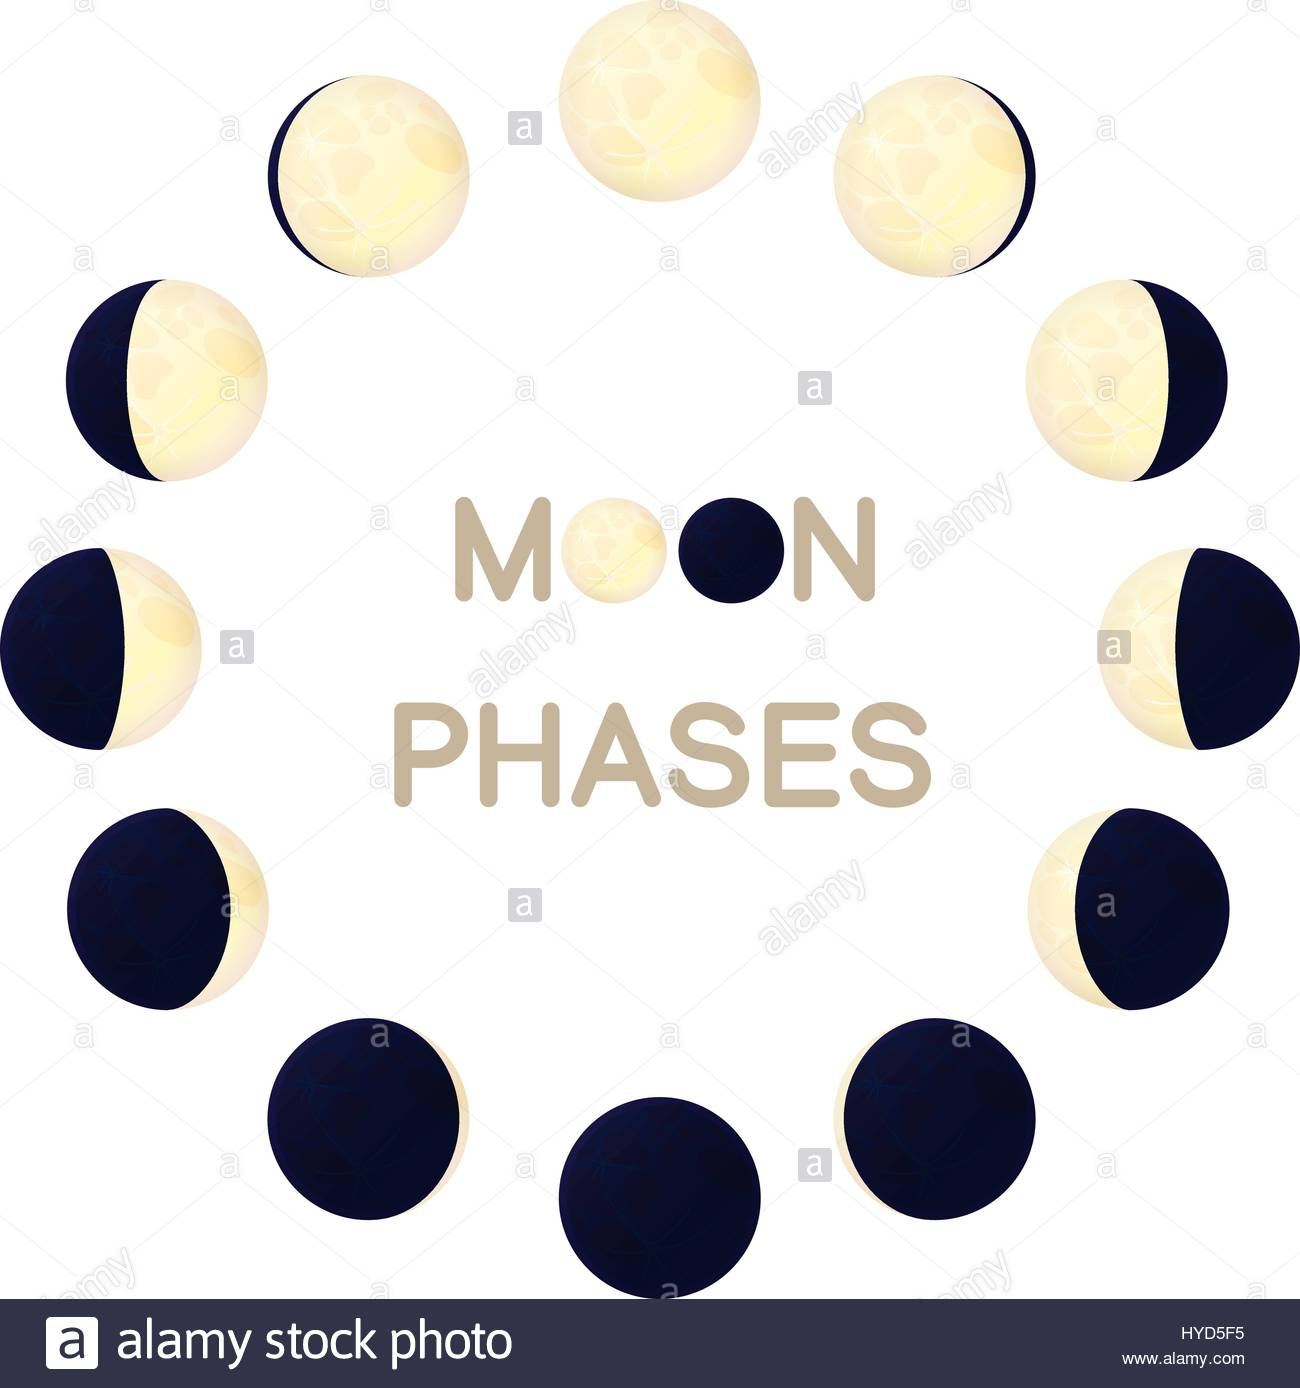 Moon phases stock photos moon phases stock images alamy square moon phases on transparent background stock image pooptronica Choice Image